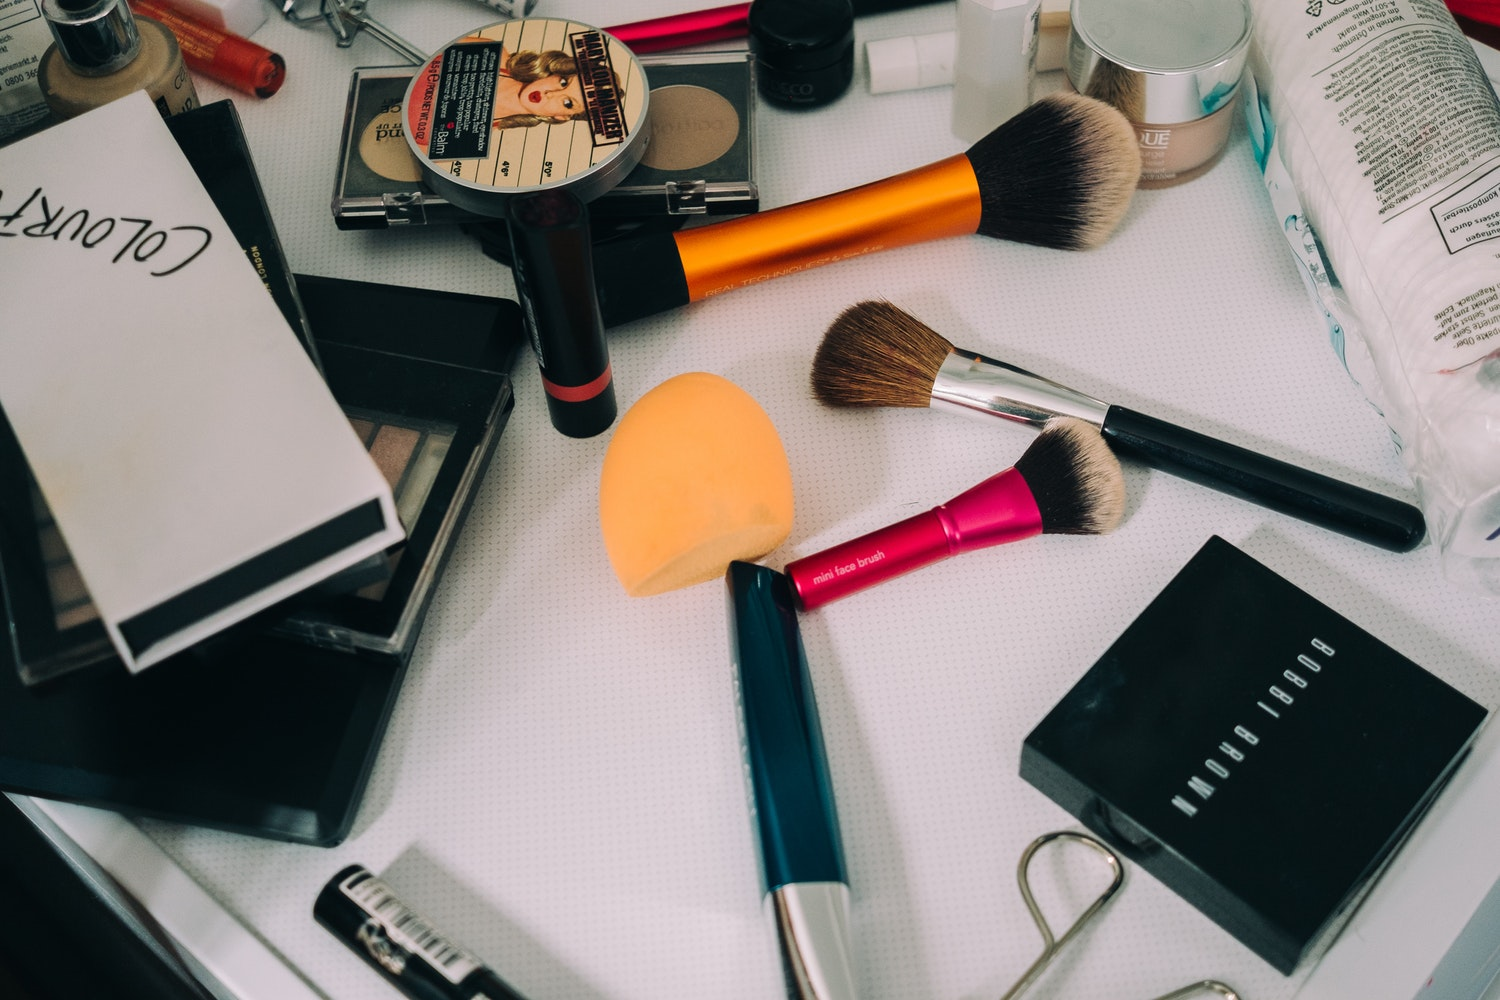 5-Makeup-and-Beauty-Products-That-Are-Worth-Splurging-On-and-4-That Are-Not.jpg